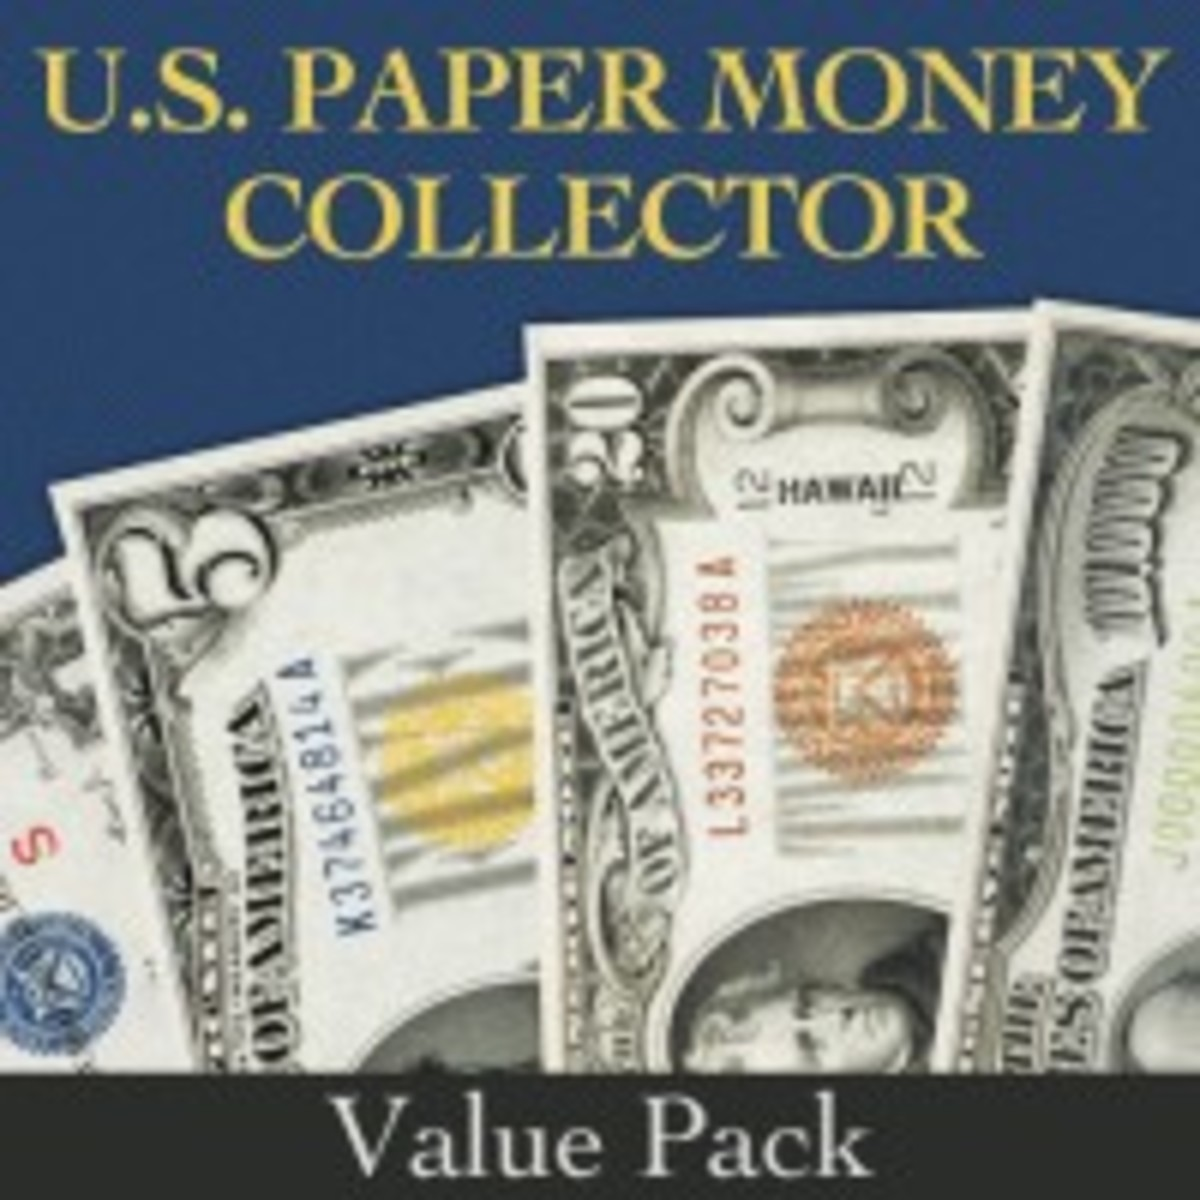 Buy the U.S. Paper Money Collector Value Pack and save money to buy paper money for your collection!